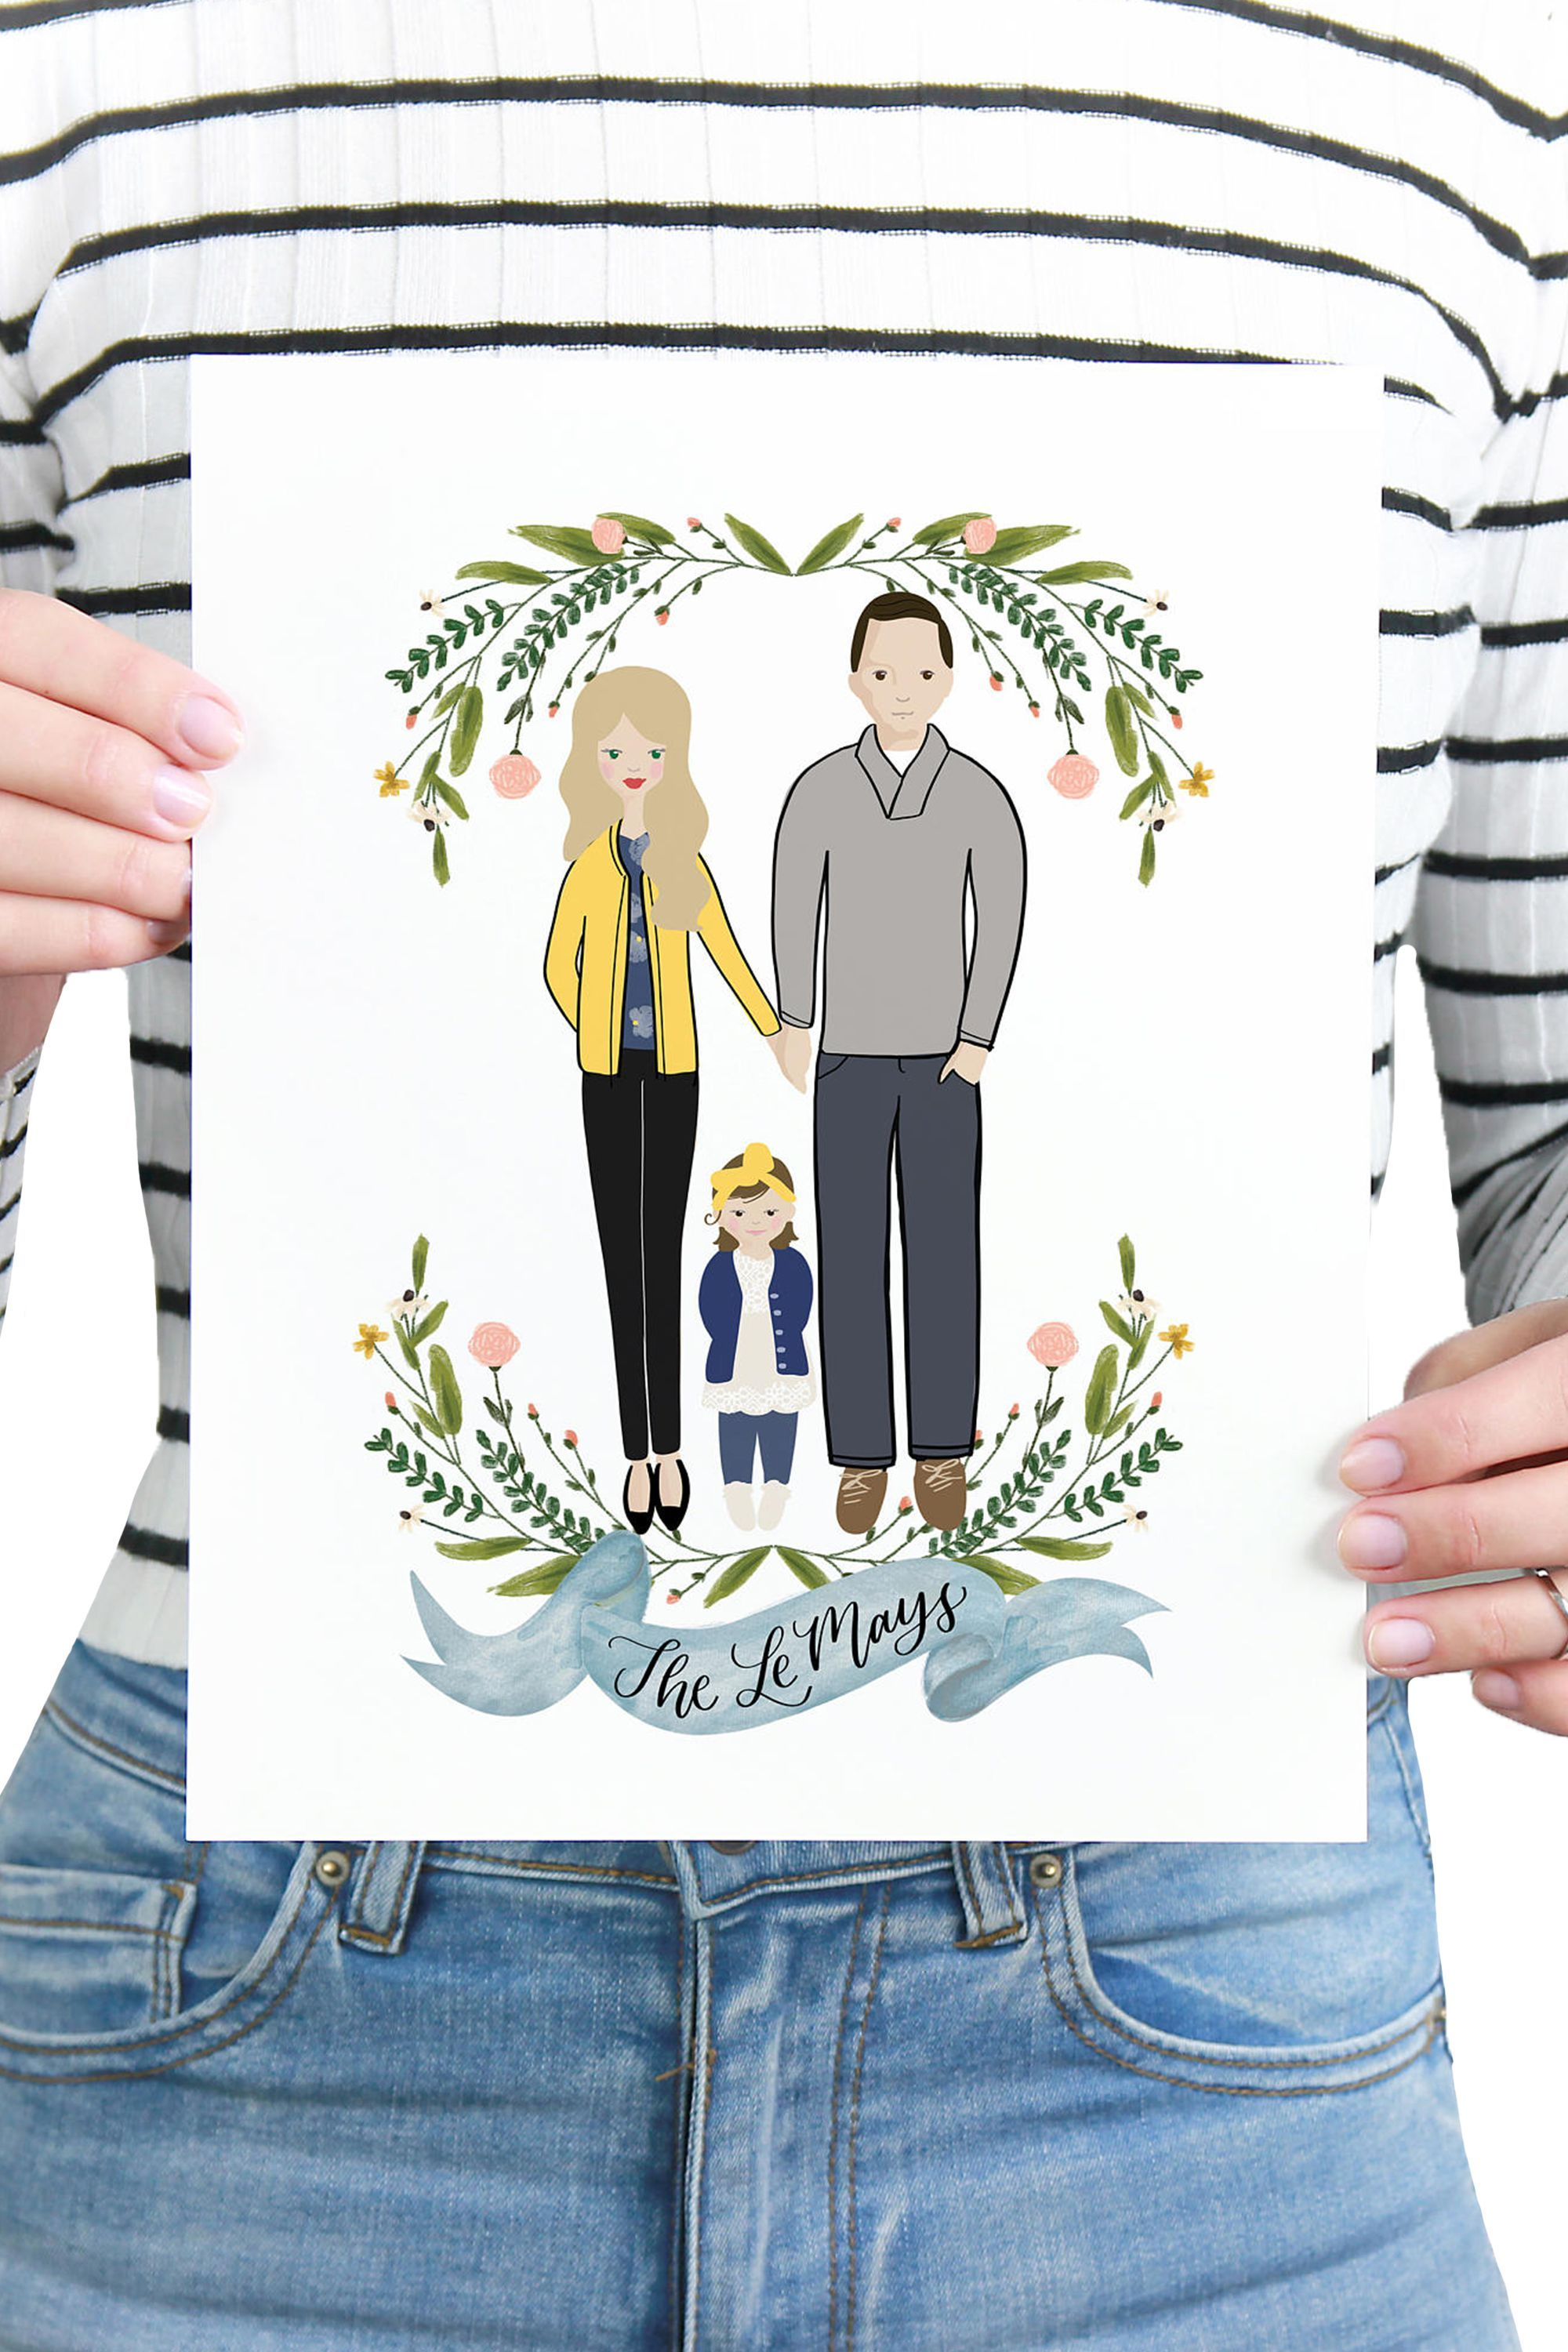 Custom Portrait PrintableWisdom etsy.com $50.00 SHOP NOW Nothing gets more personal than this. Commission an Etsy artist for a portrait of the parents to commemorate their pre-baby journey.